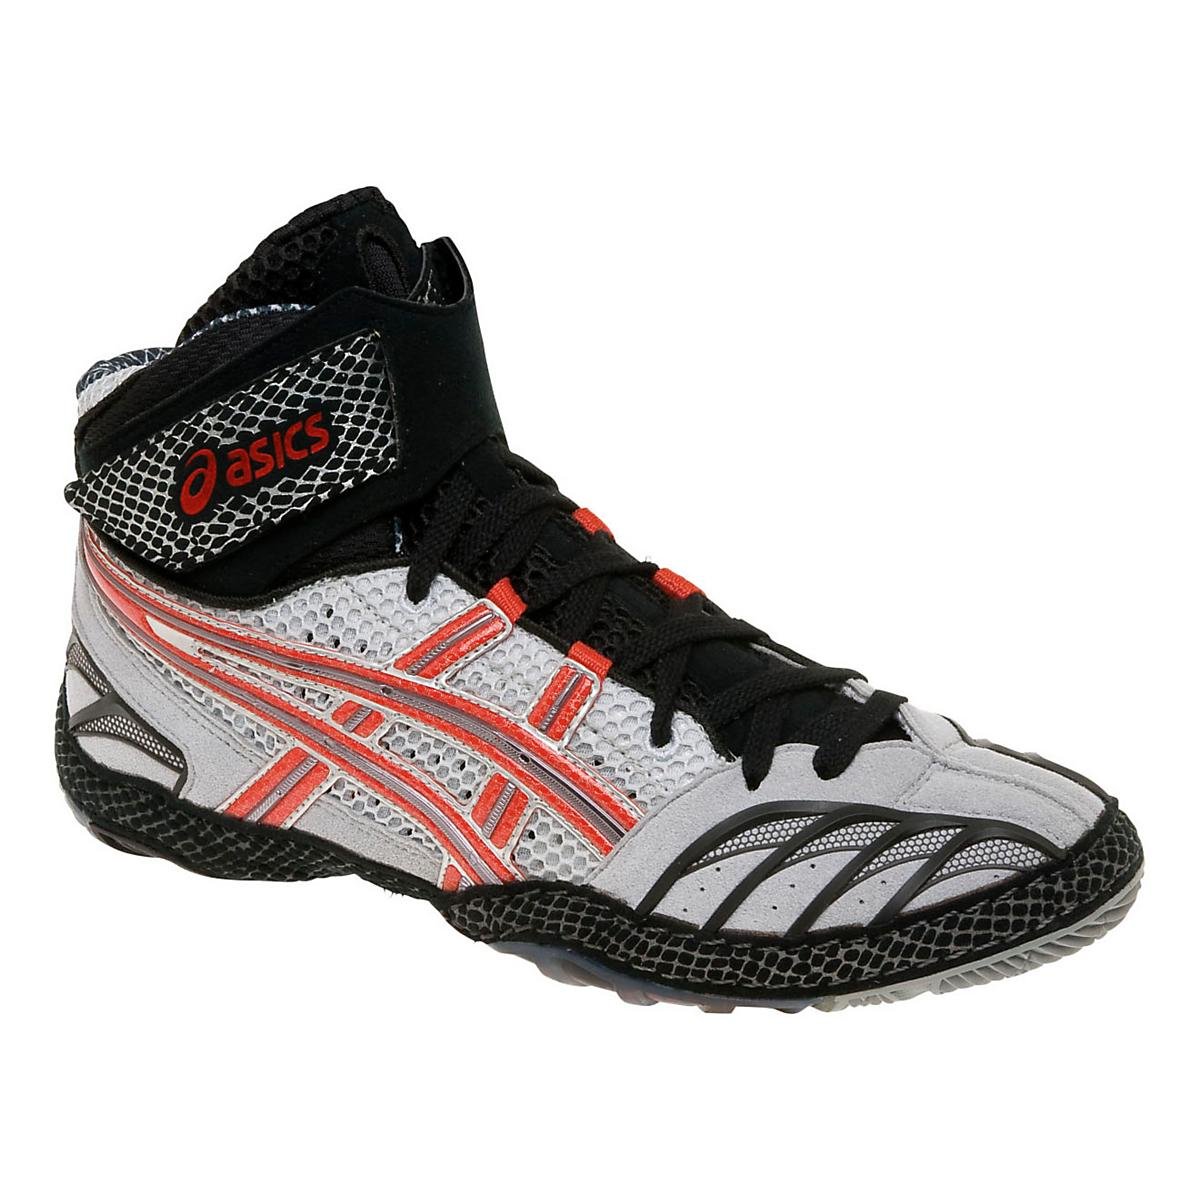 Asics Ultratek Wrestling Shoes